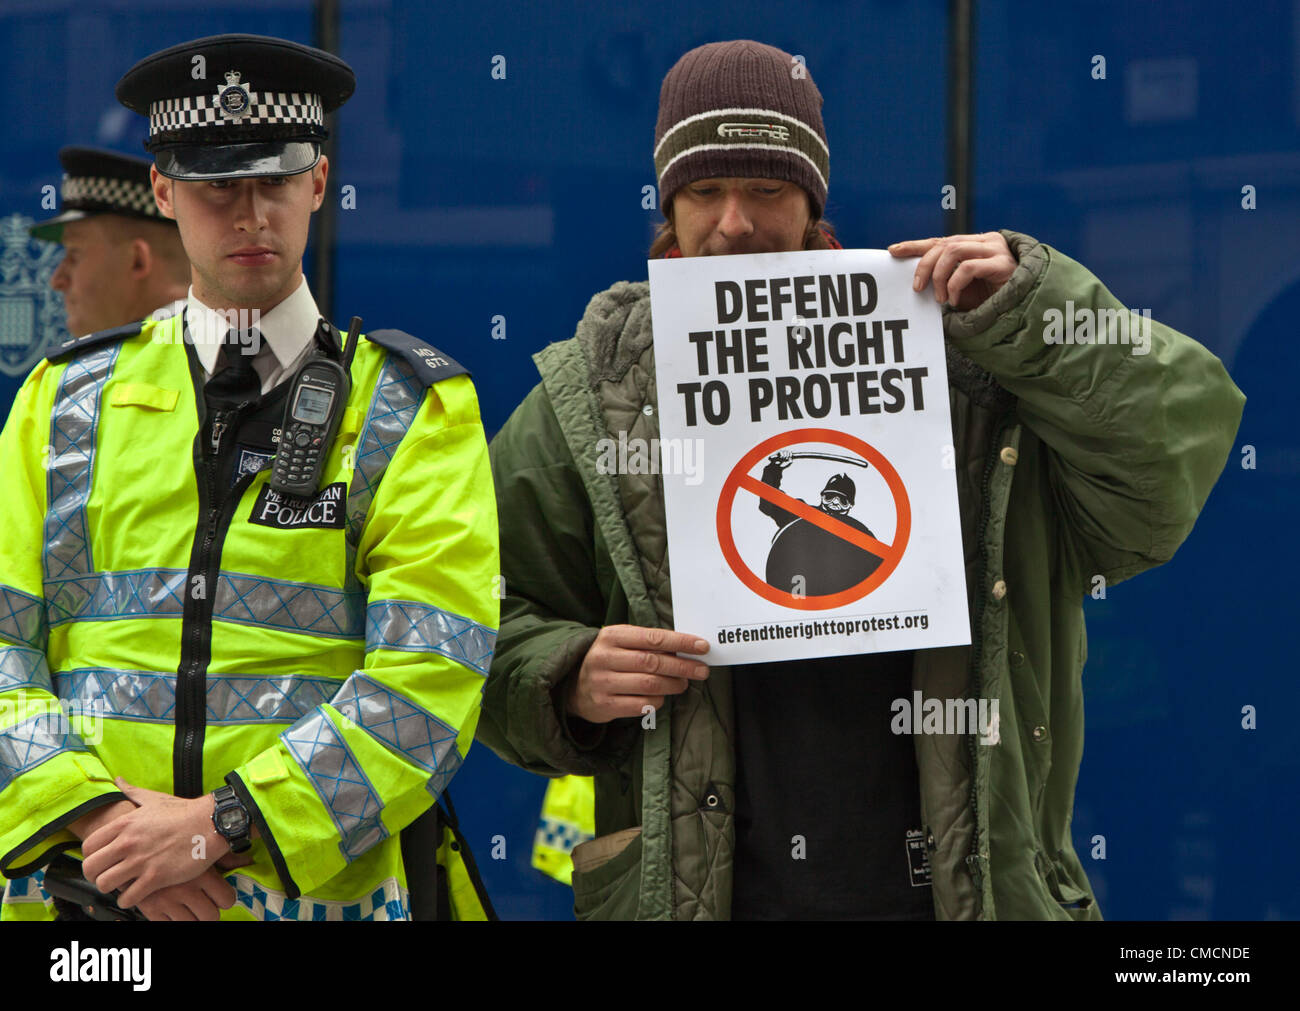 London, UK. 19th July 2012 A protestor hold a sign saying 'Defend the right to protest' next to a police - Stock Image